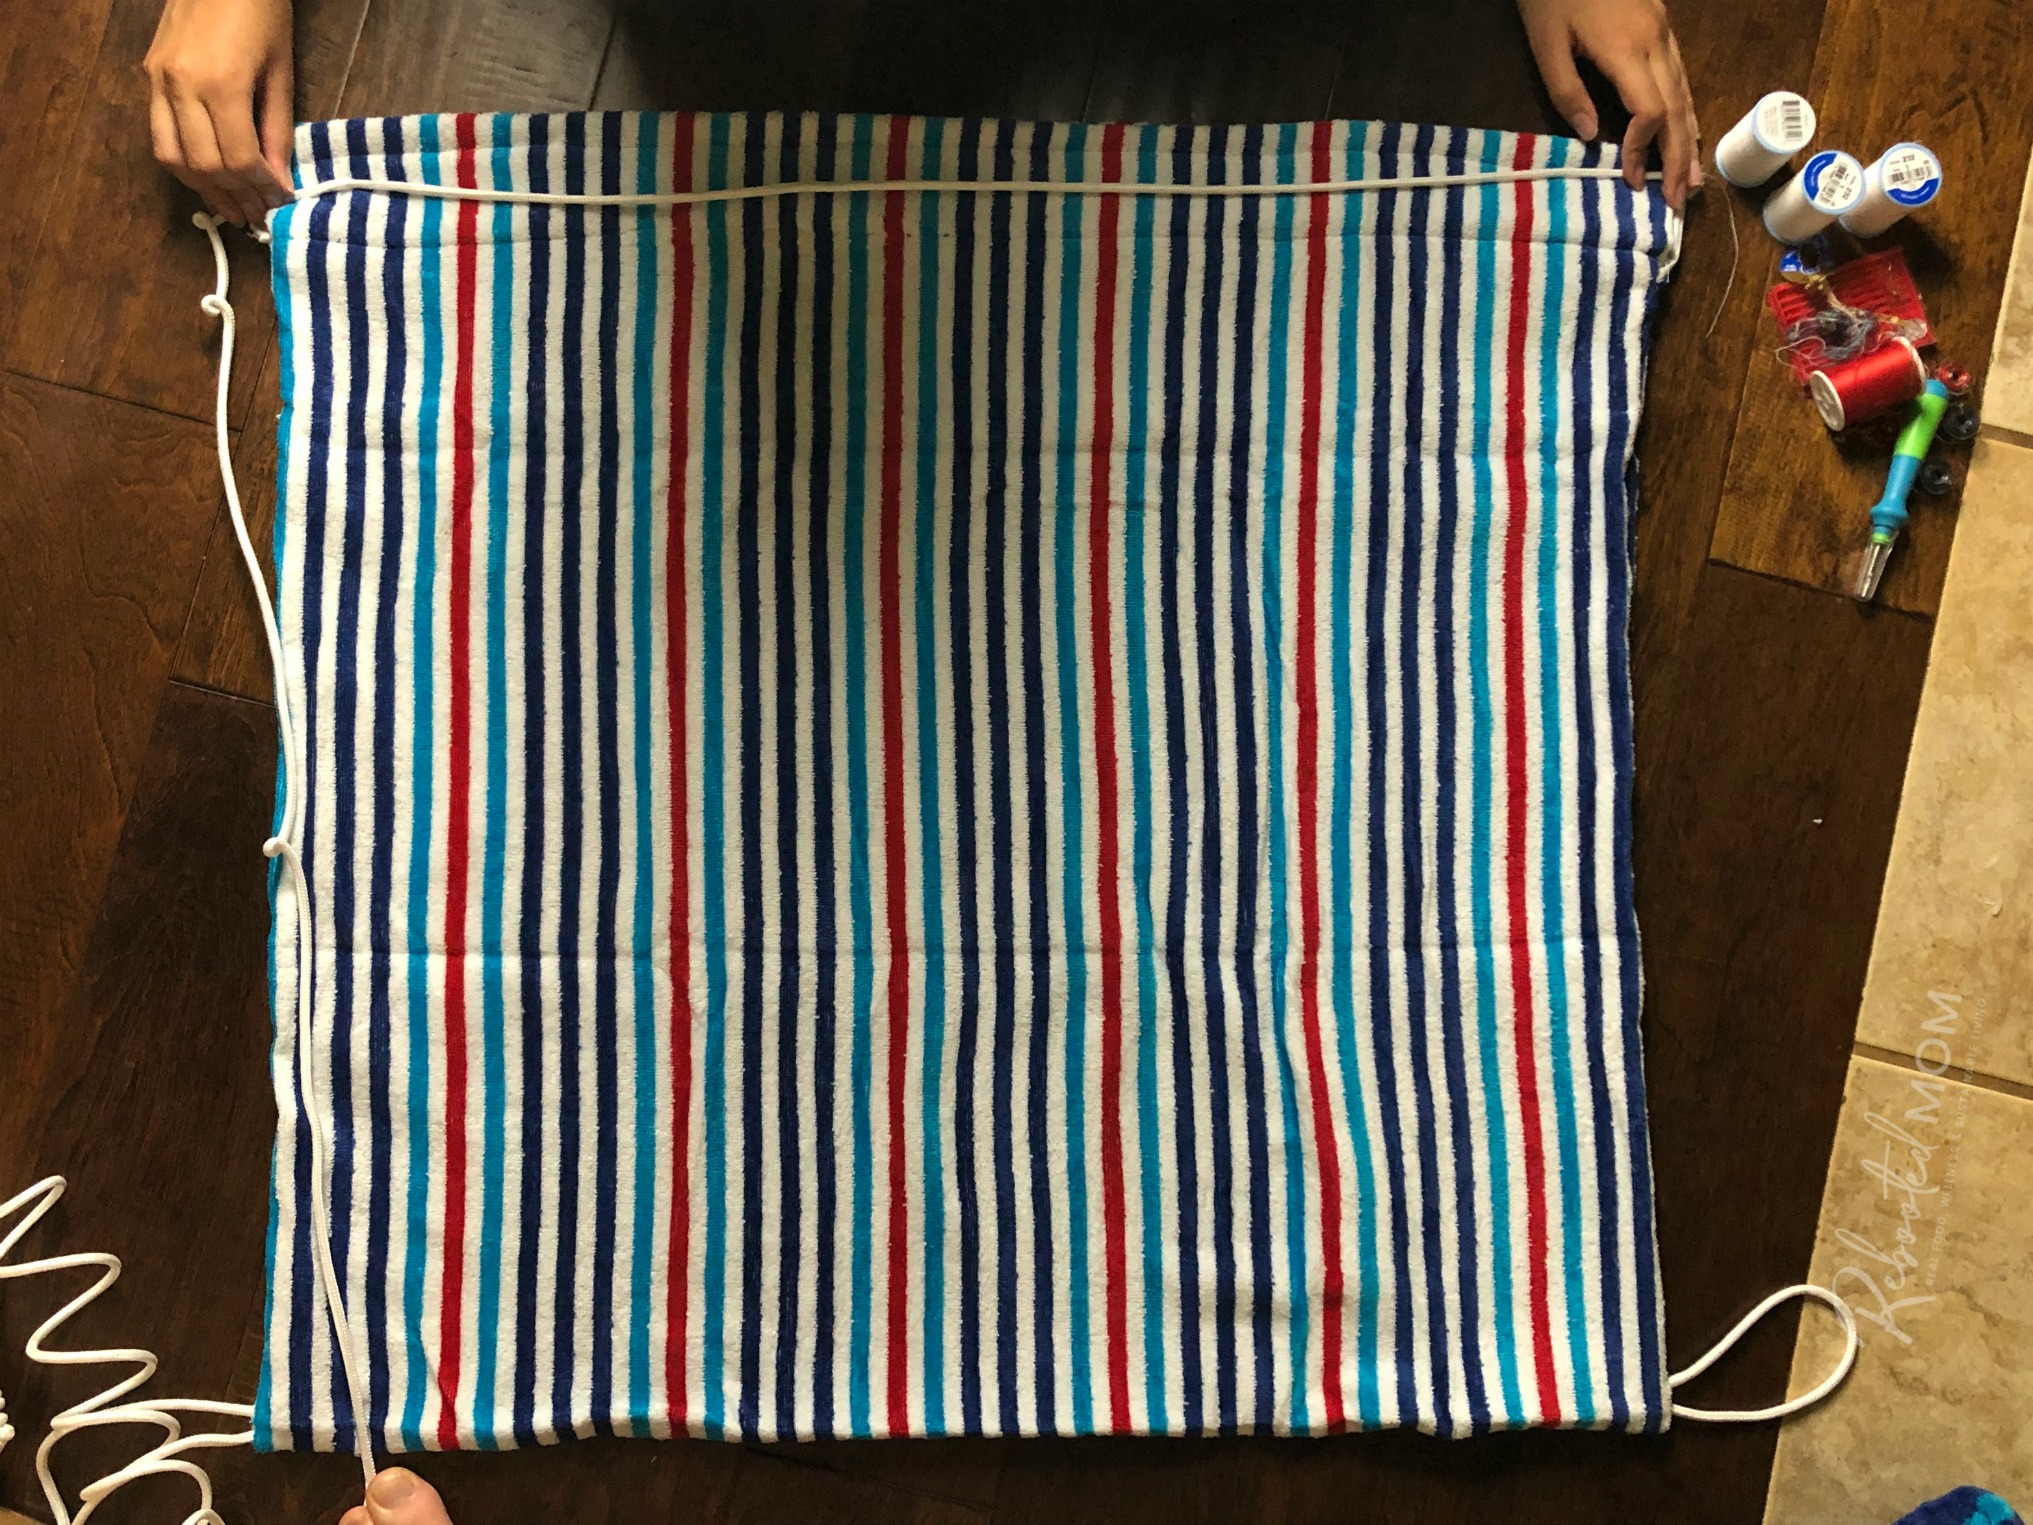 DIY Beach Towel Bag - measure the rope ties